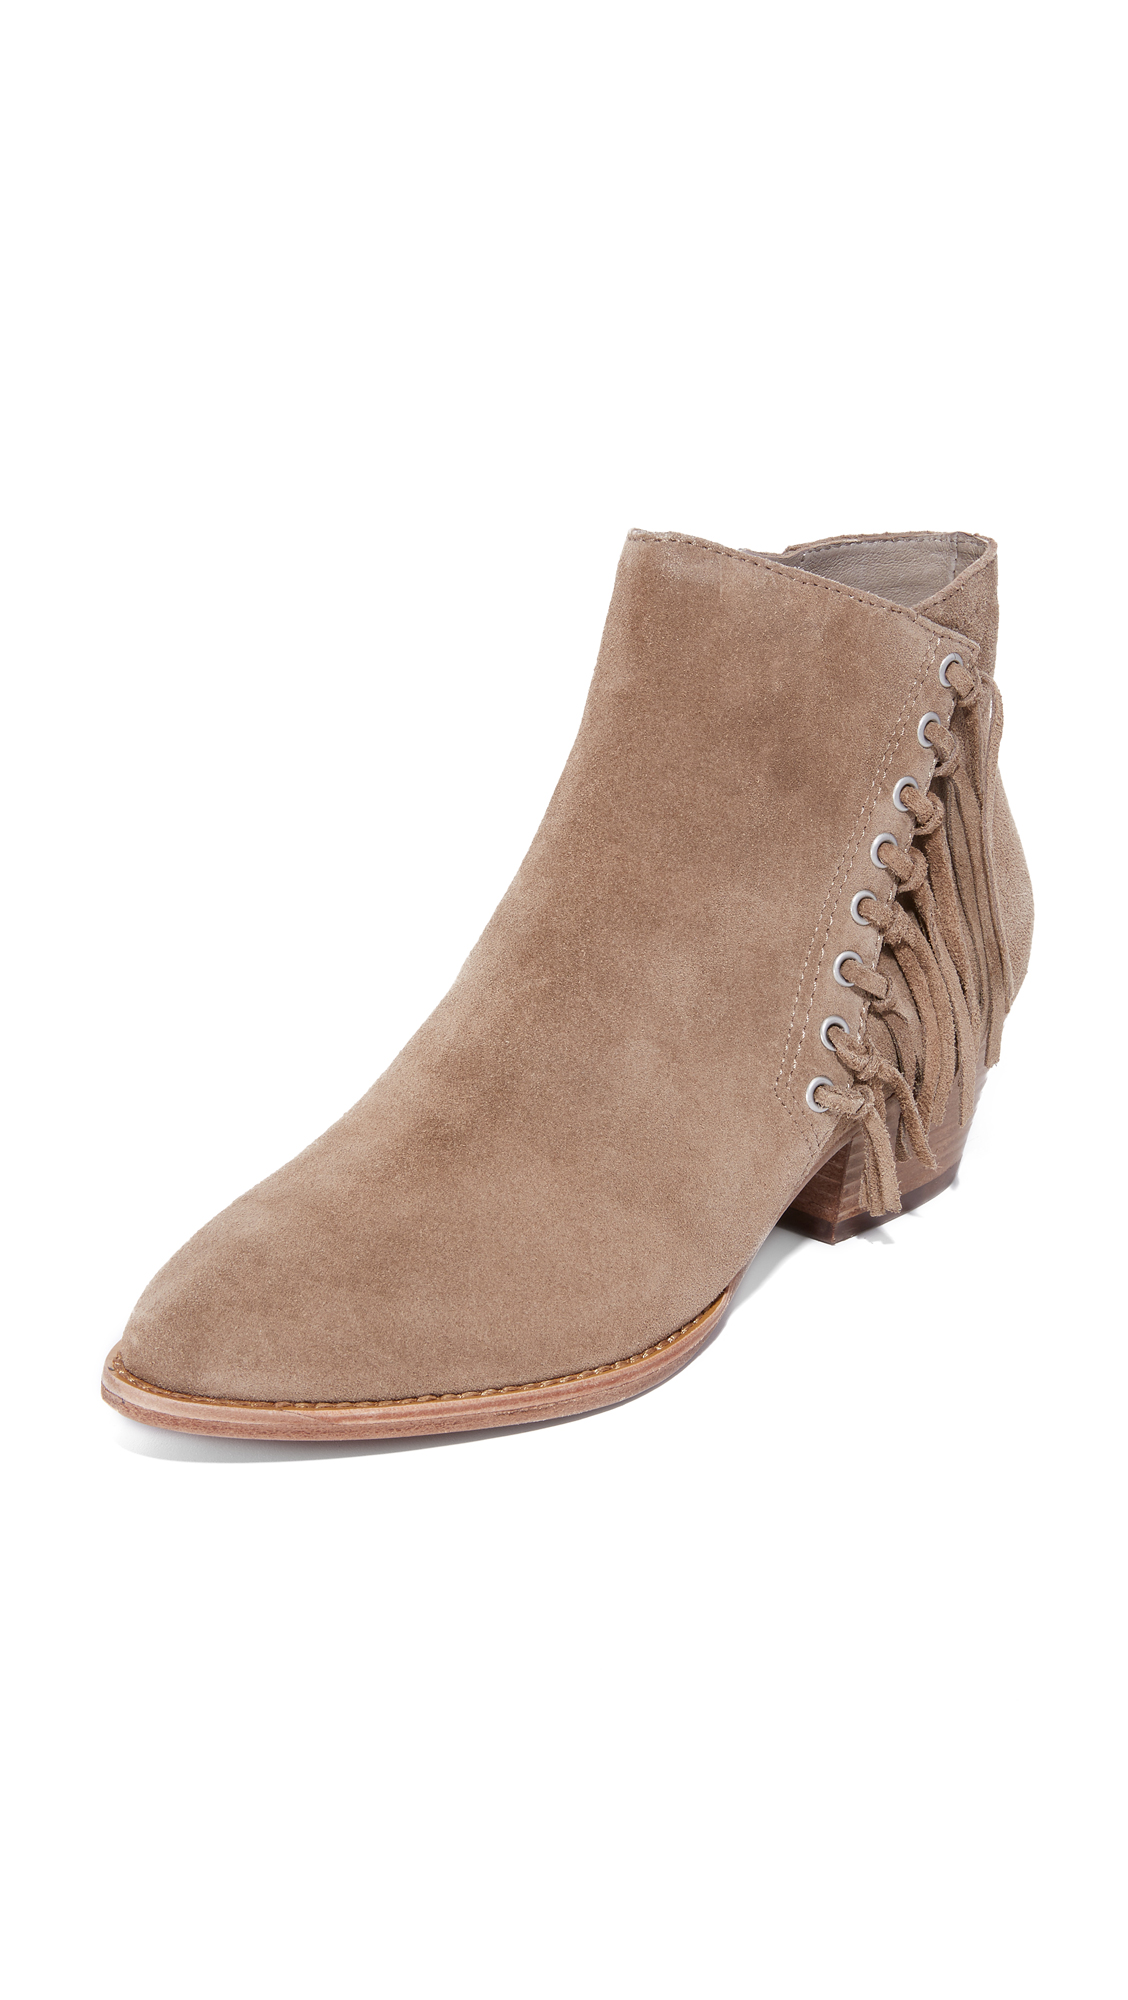 Ash Lenny Booties - Cocco